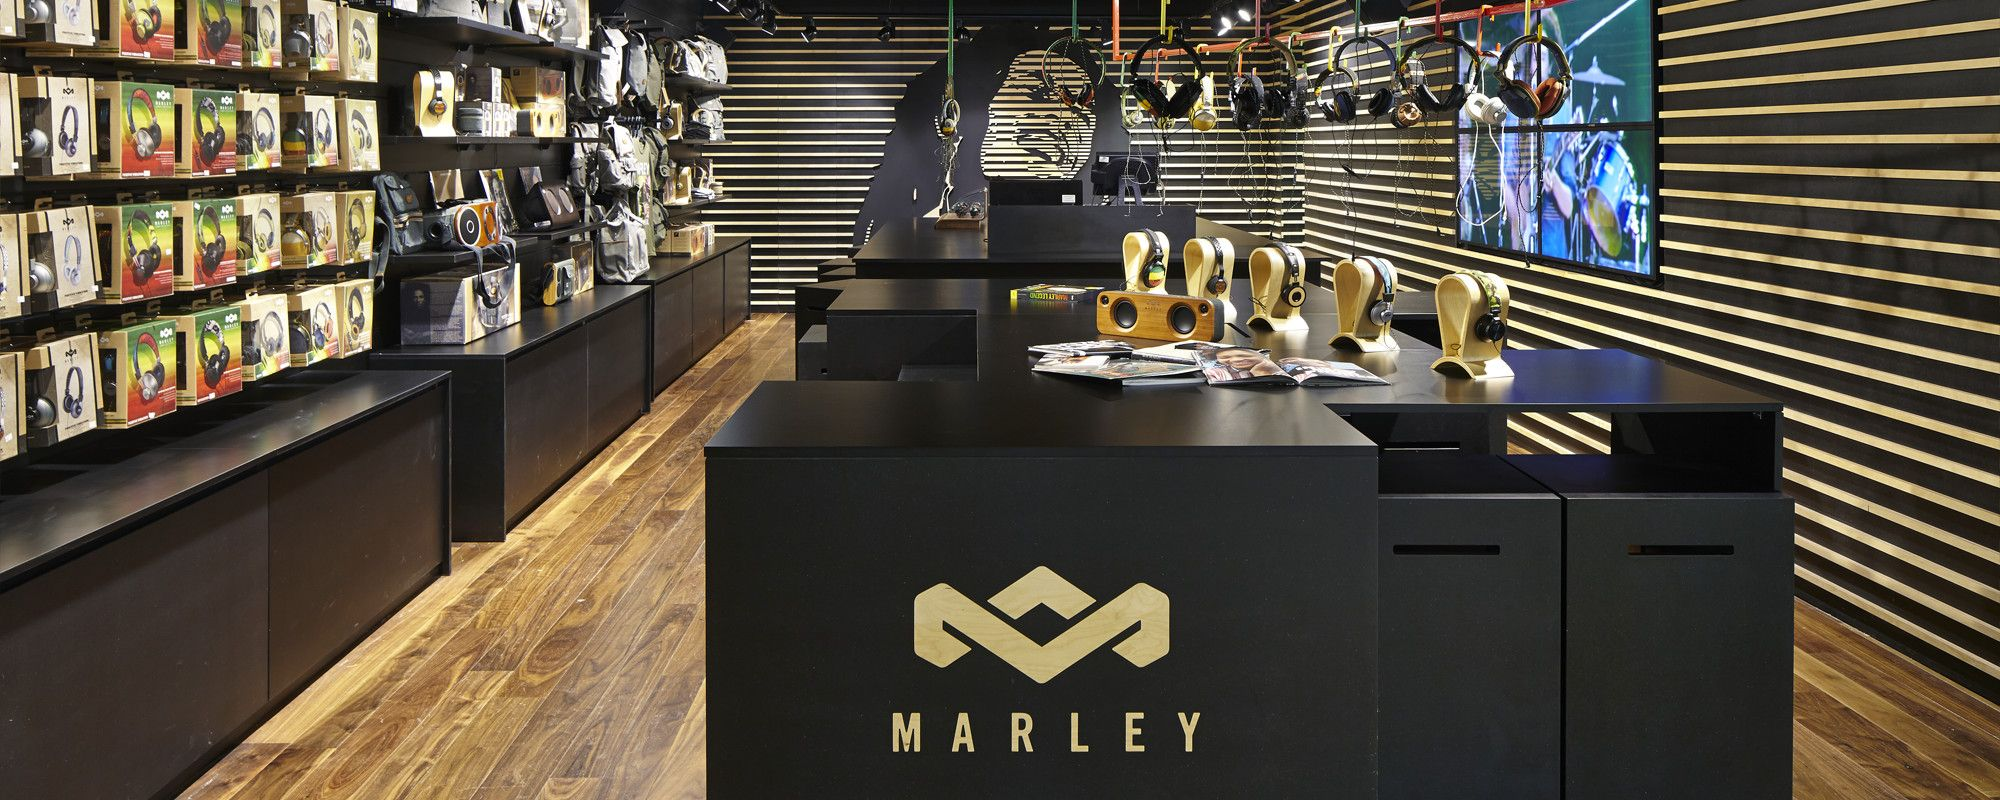 House of marley concept store